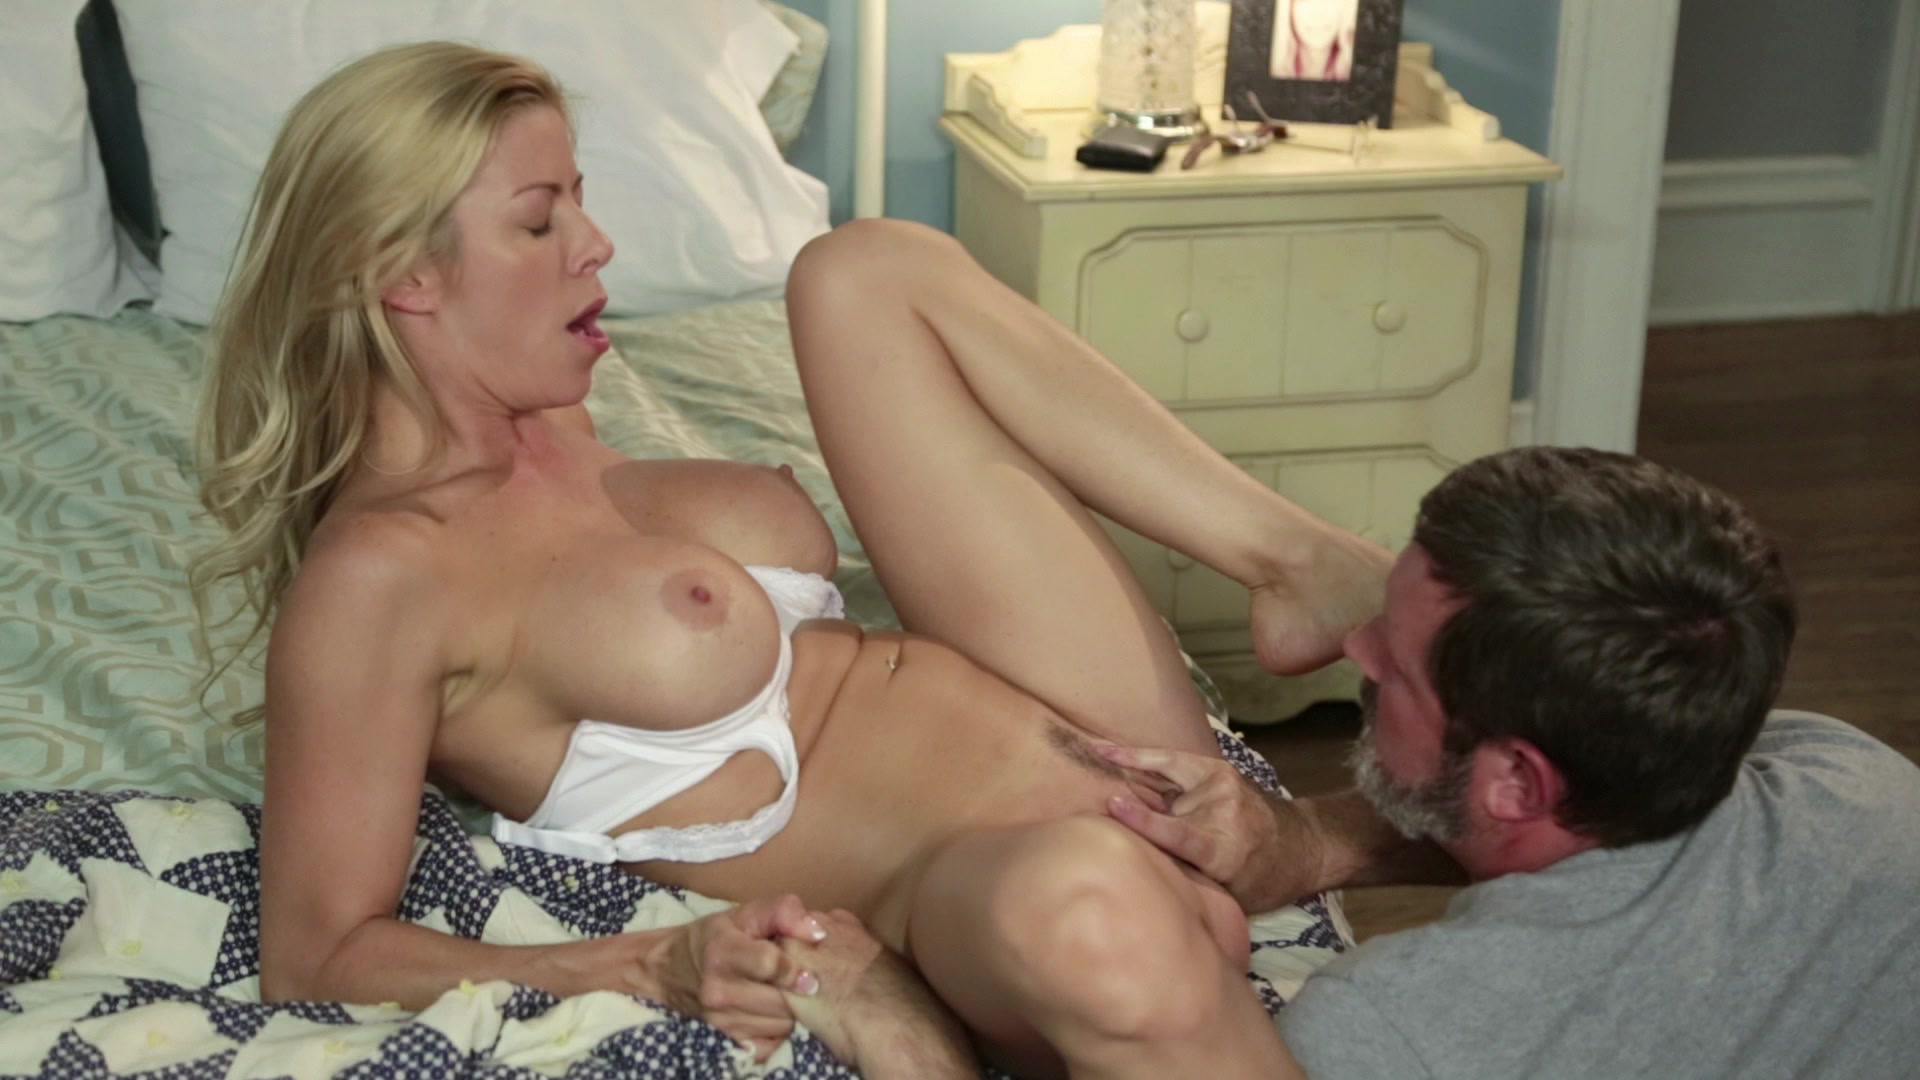 Scene with Brad Armstrong and Alexis Fawx - image 13 out of 20